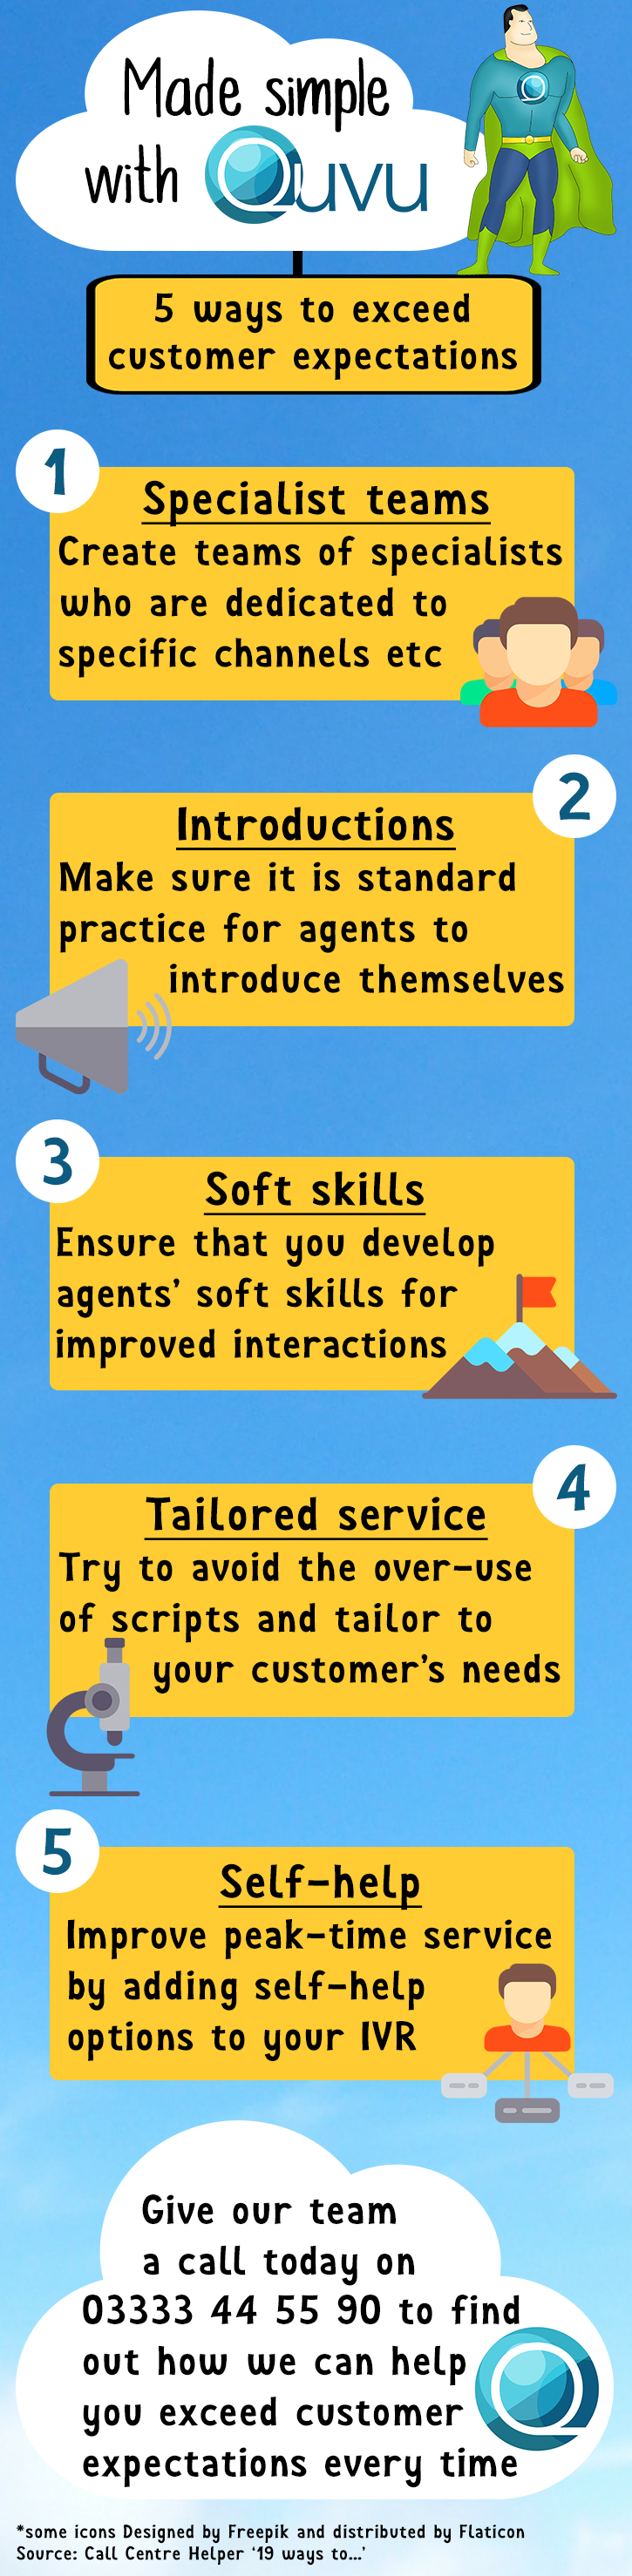 Made simple with Quvu infographic - 2 - Exceeding custmer expectations - infographic